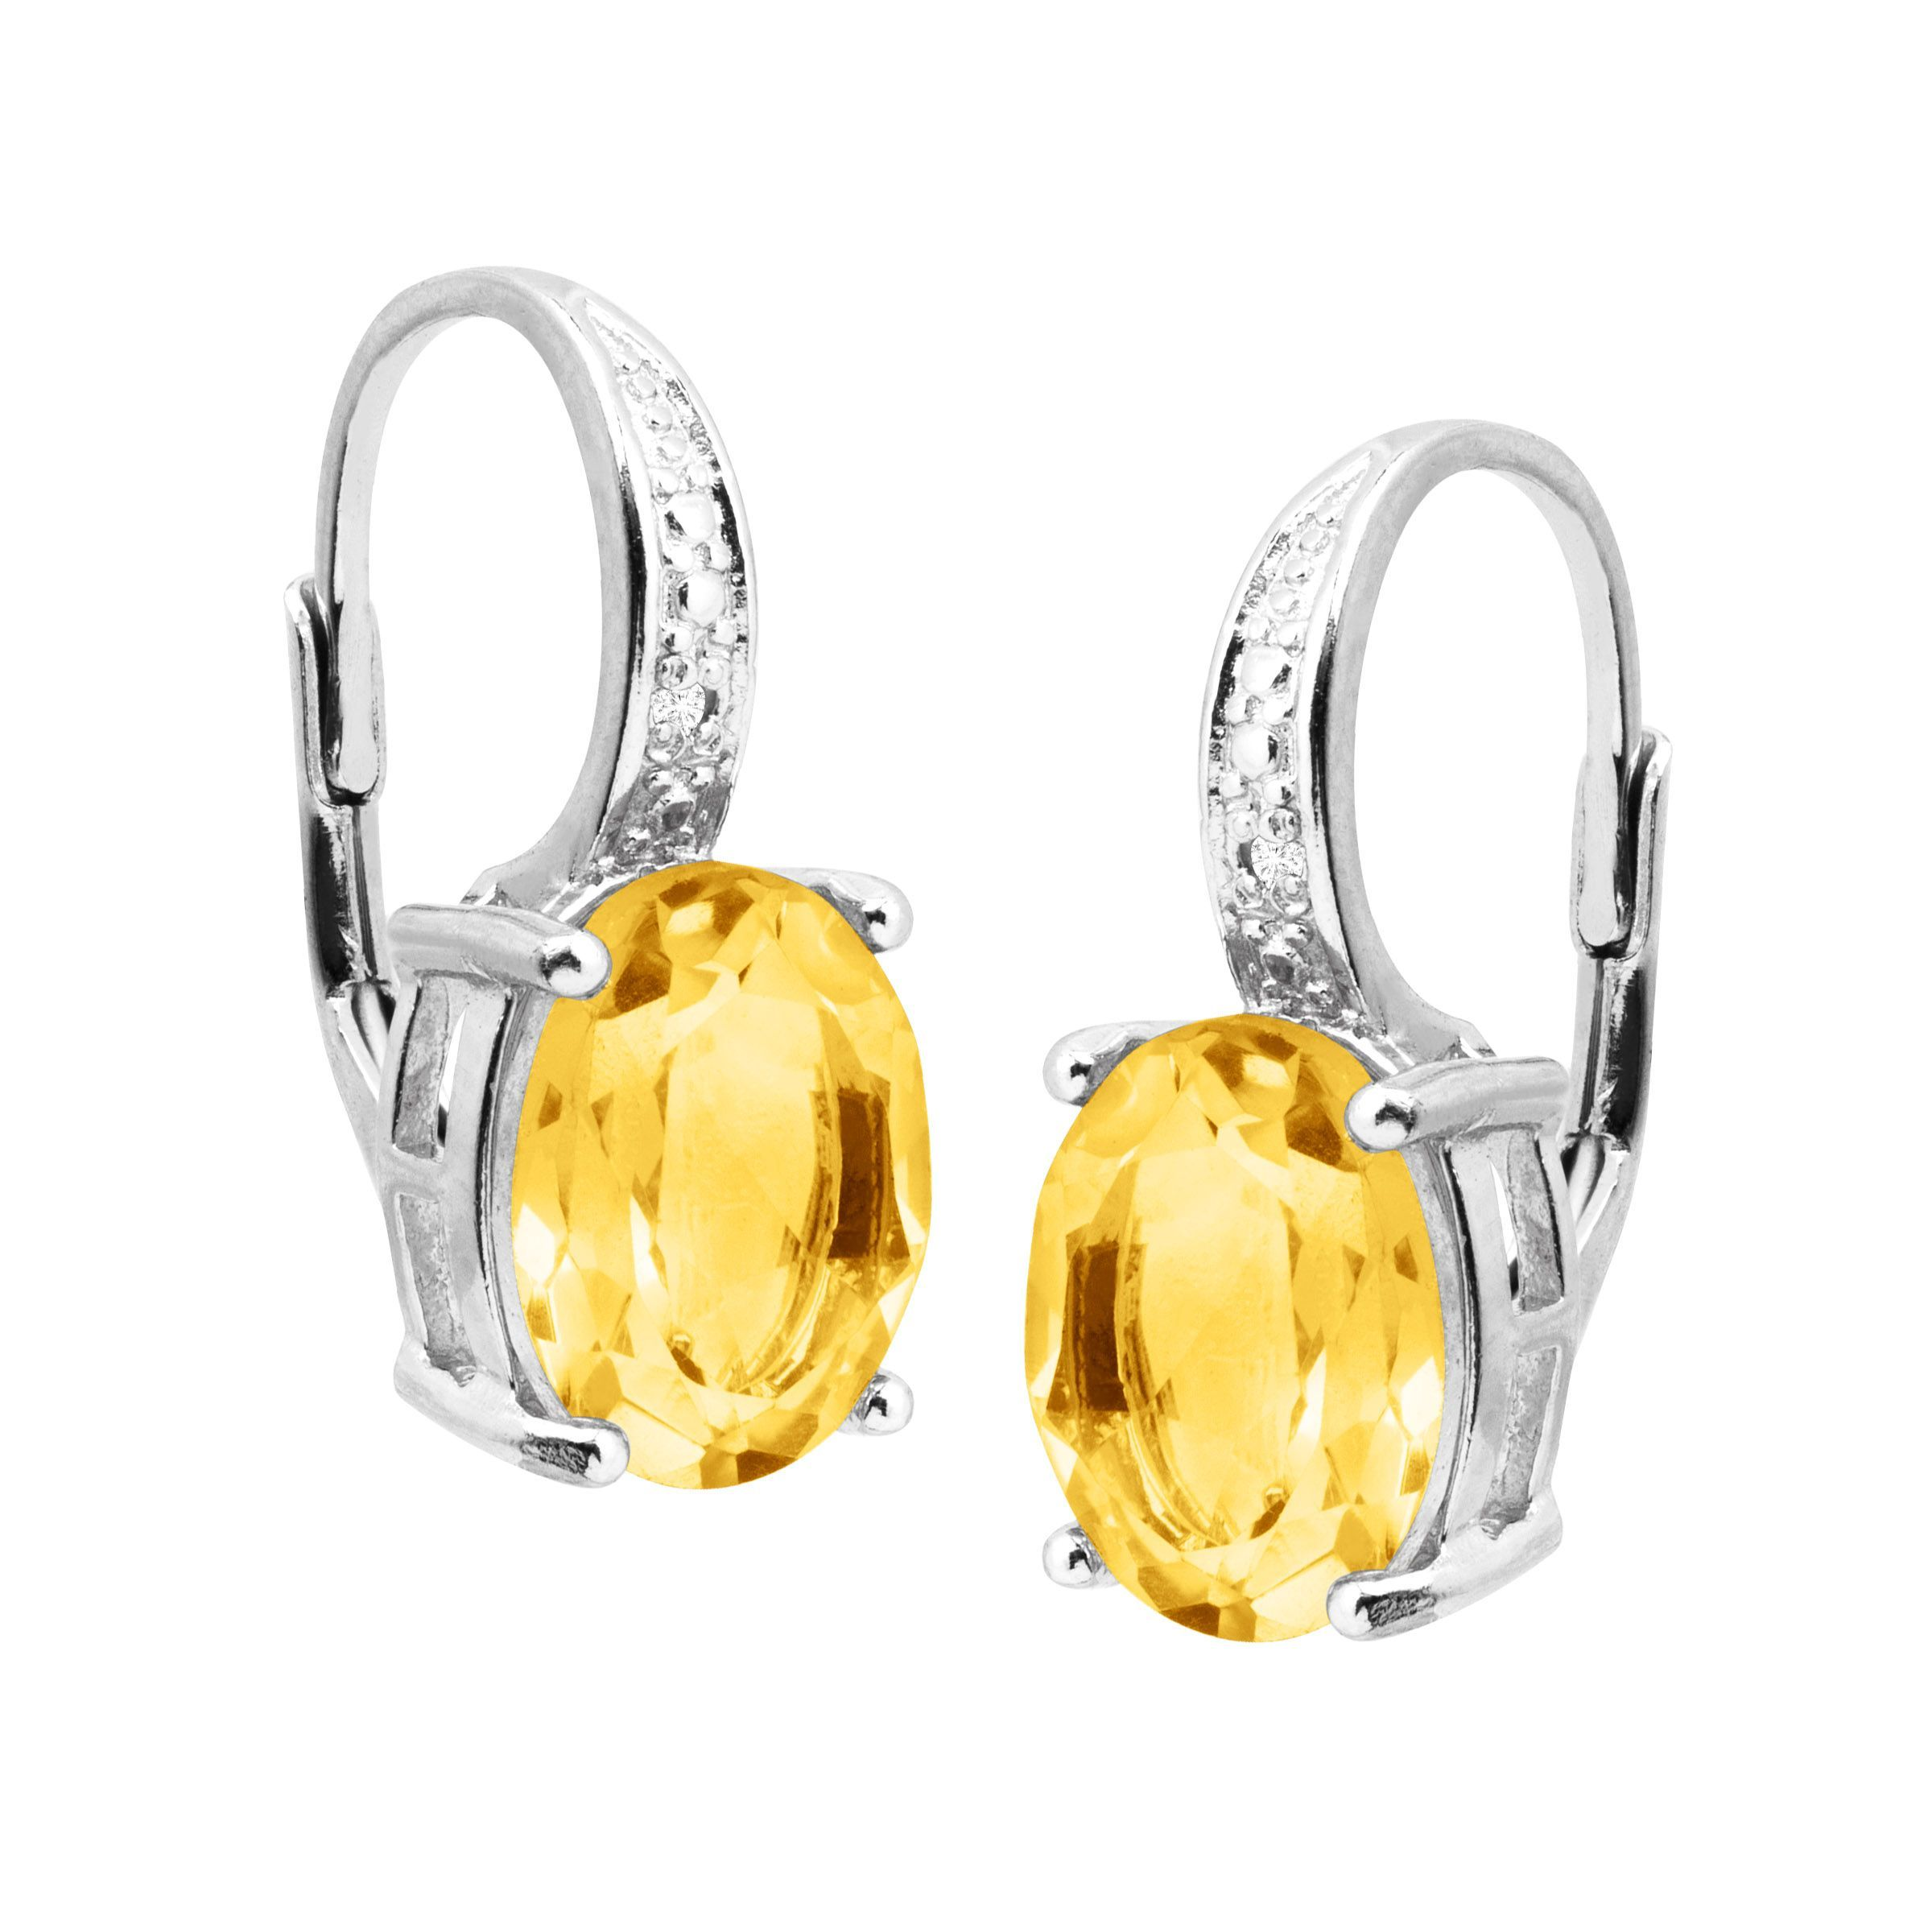 Natural-Gemstone-Drop-Earrings-with-Diamonds-in-Sterling-Silver thumbnail 18